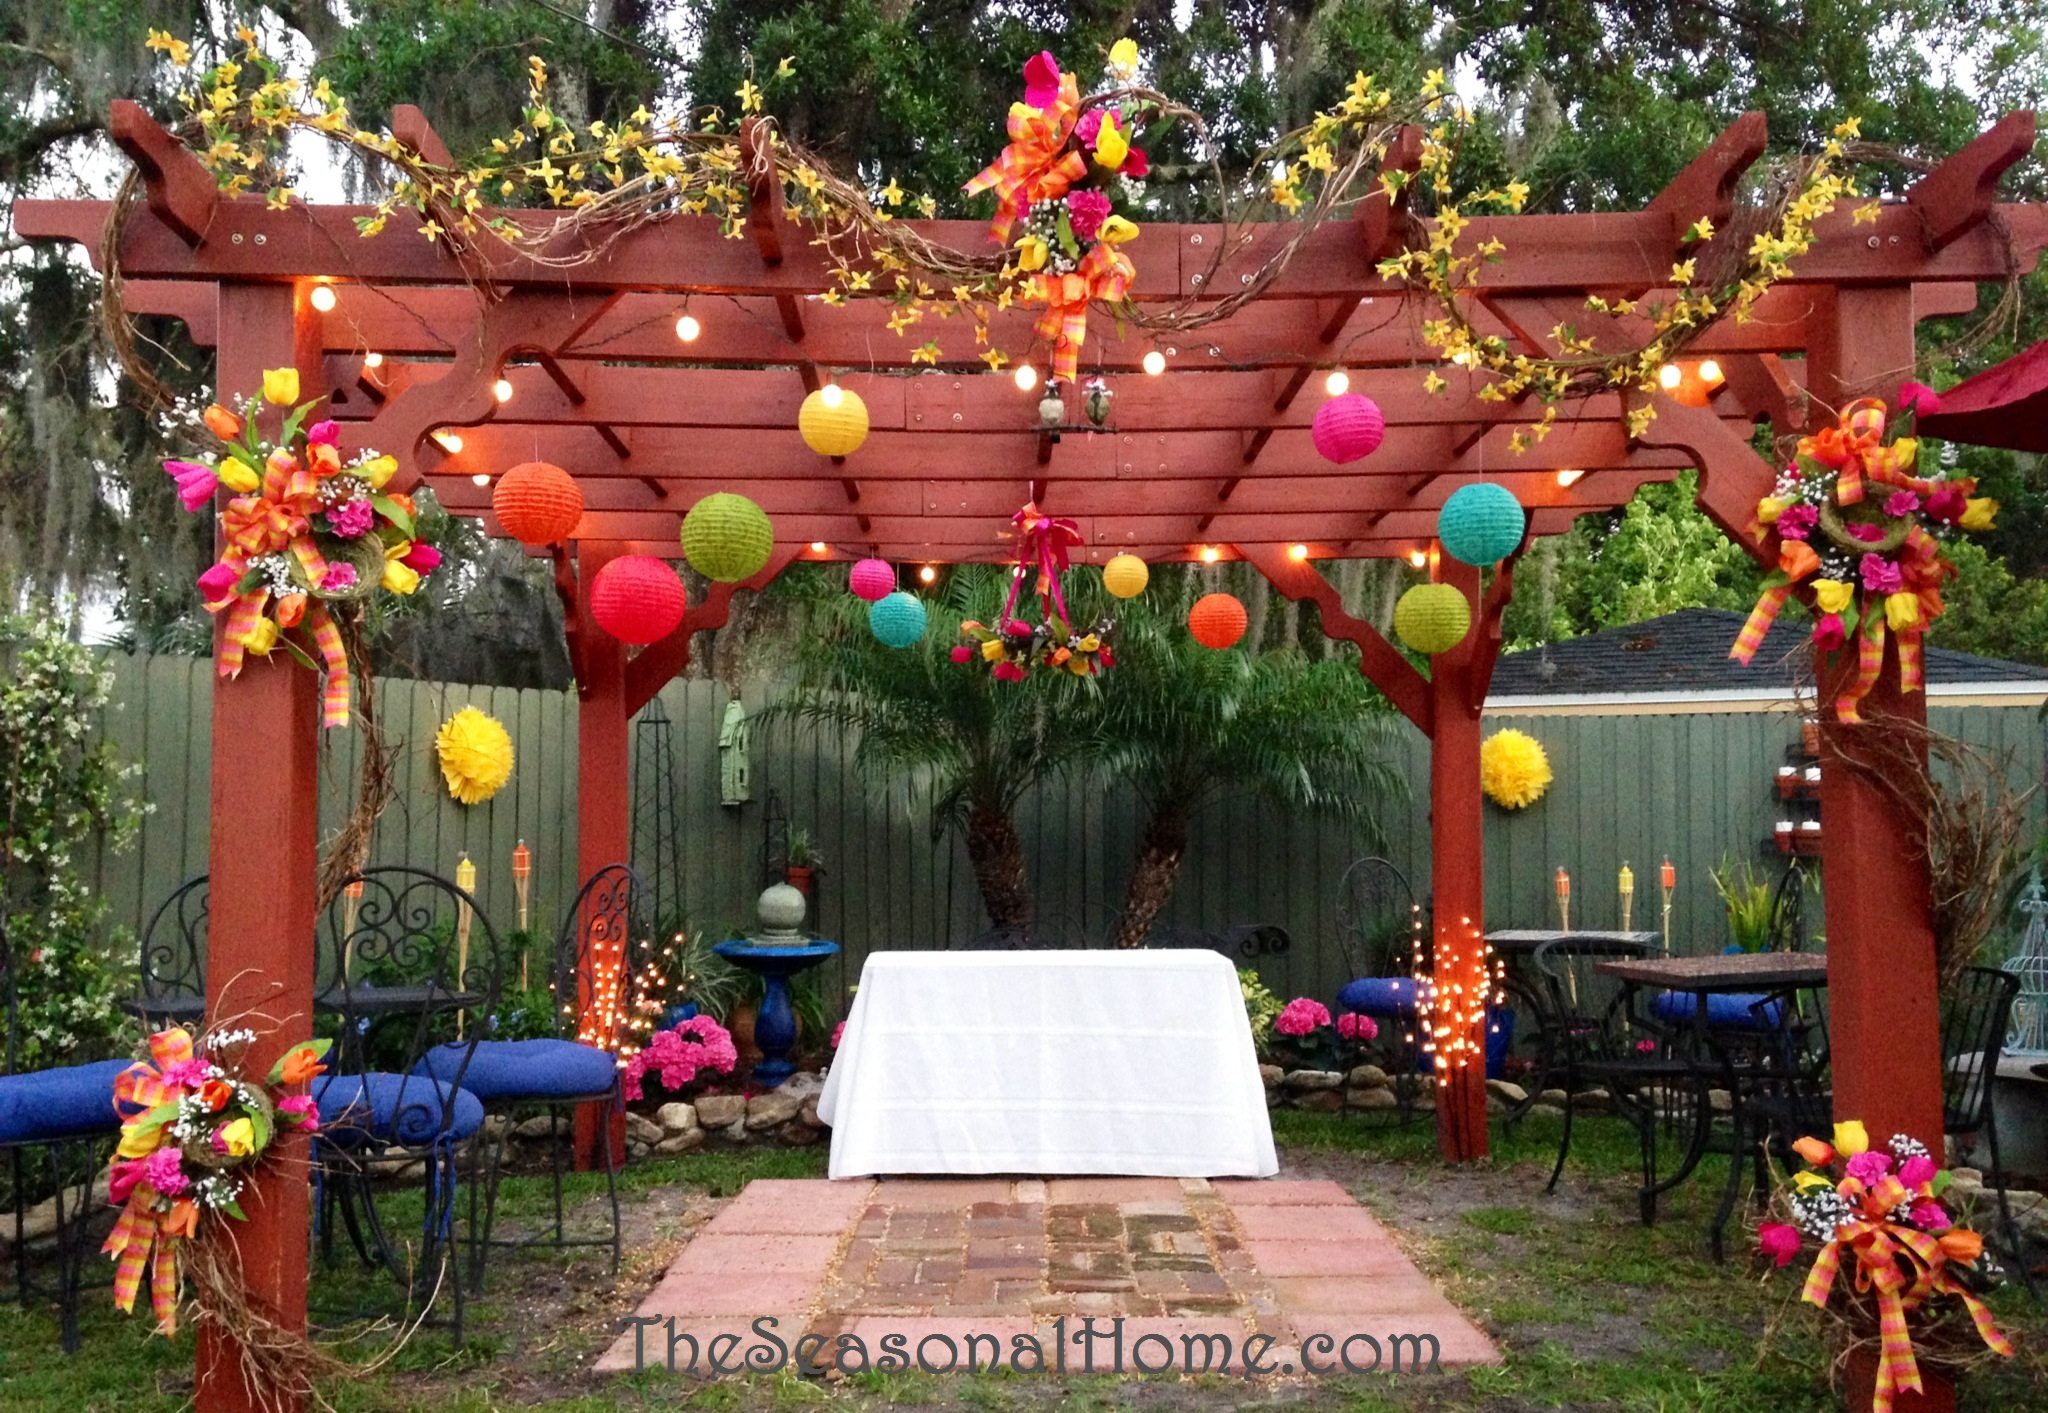 Ideas For A Budget Friendly Nostalgic Backyard Wedding Reception The Seasonal Home